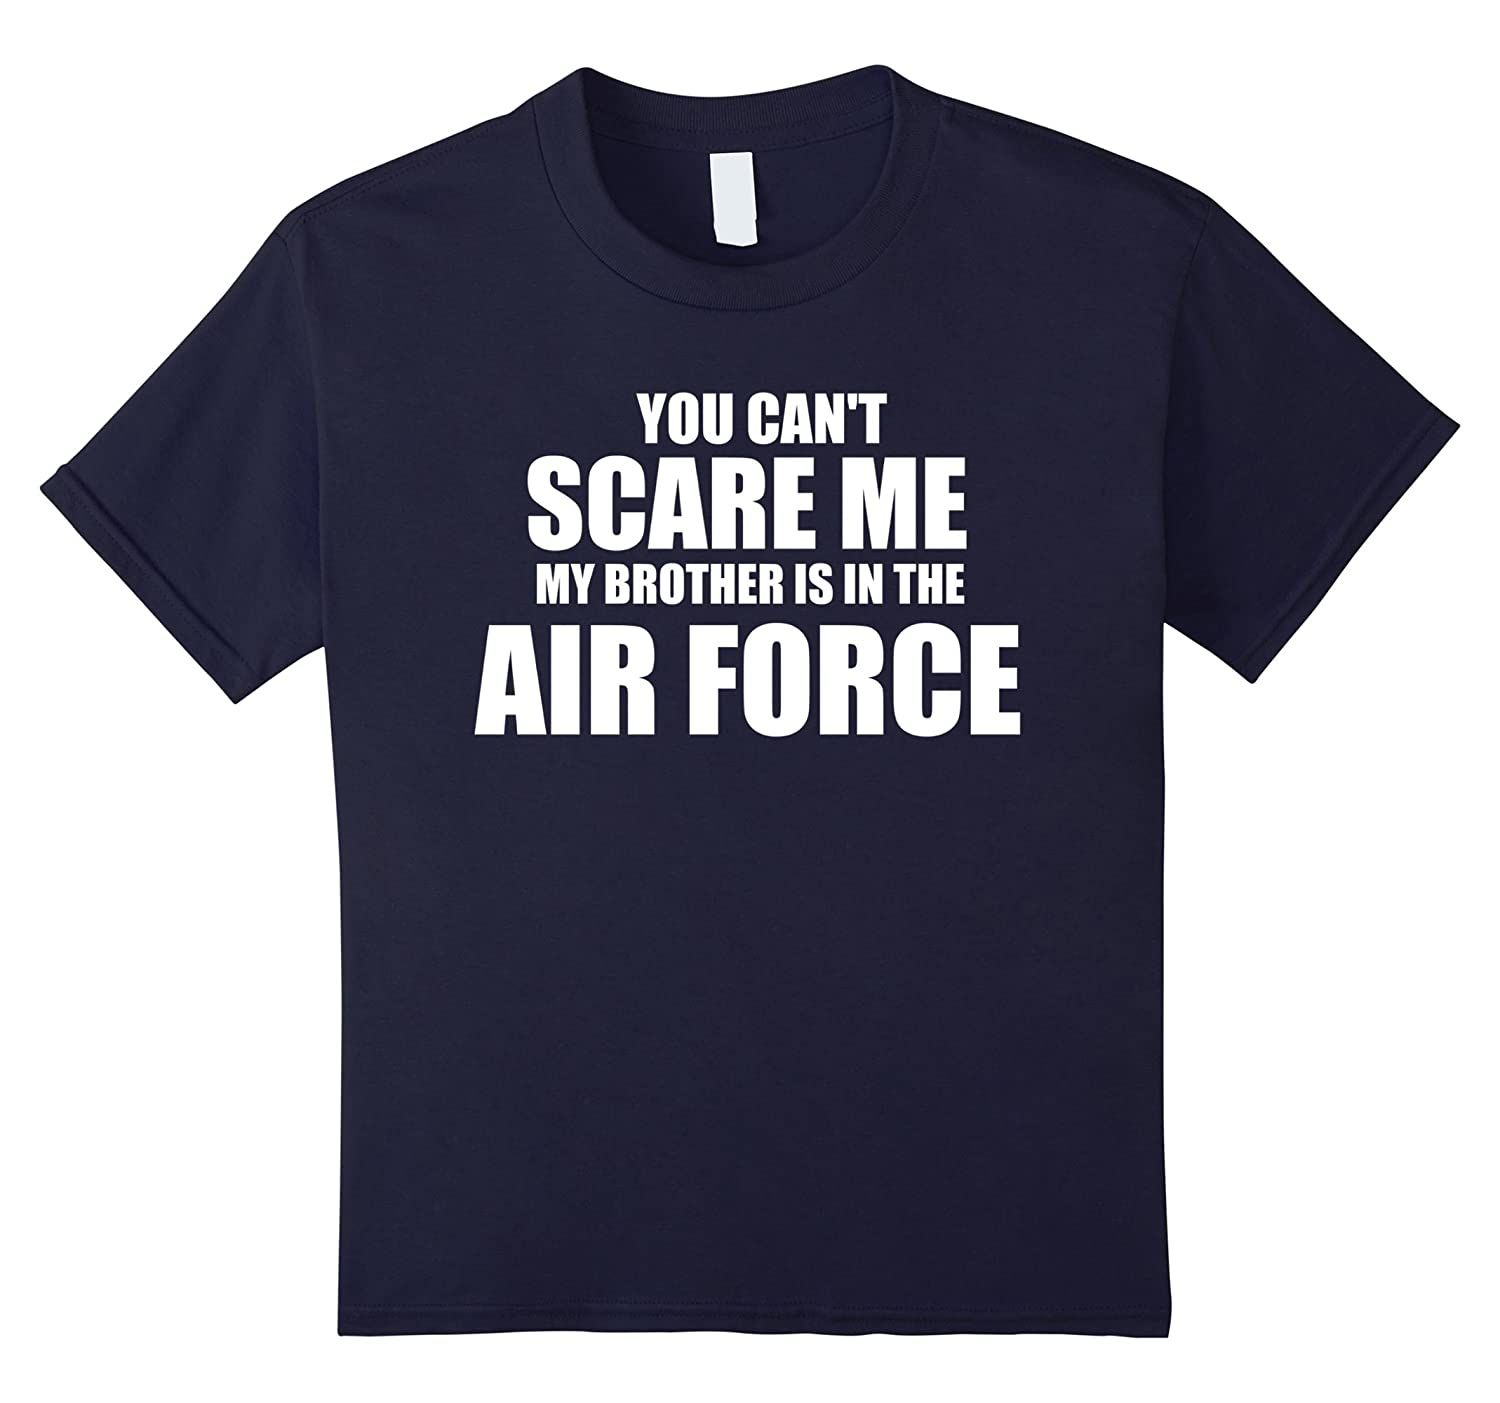 You can't scare me my brother is in the air force shirt